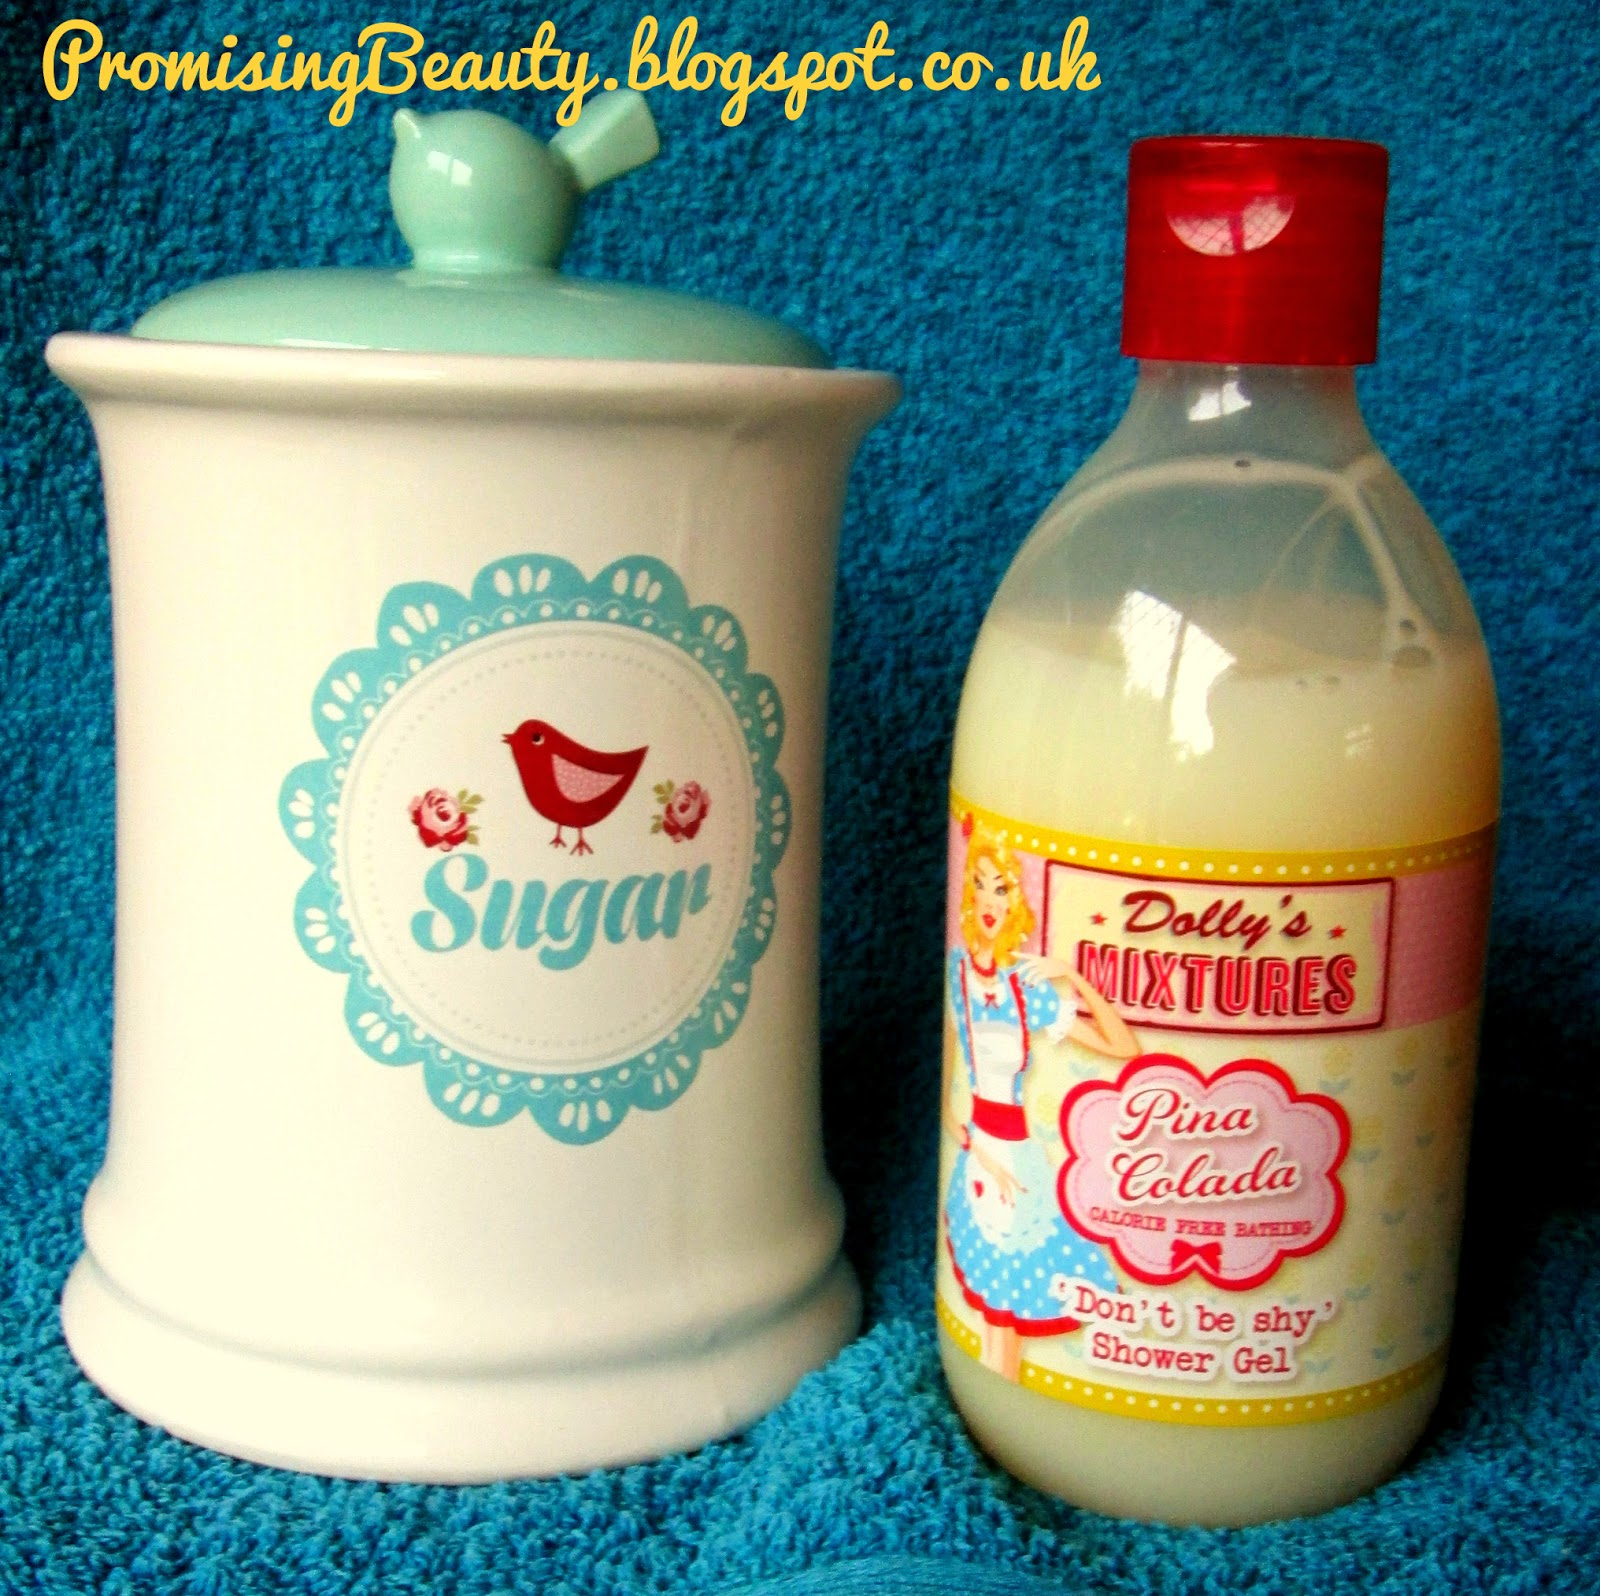 Sugar jar, dollys mixtures shower gel bubble bath, pina colada